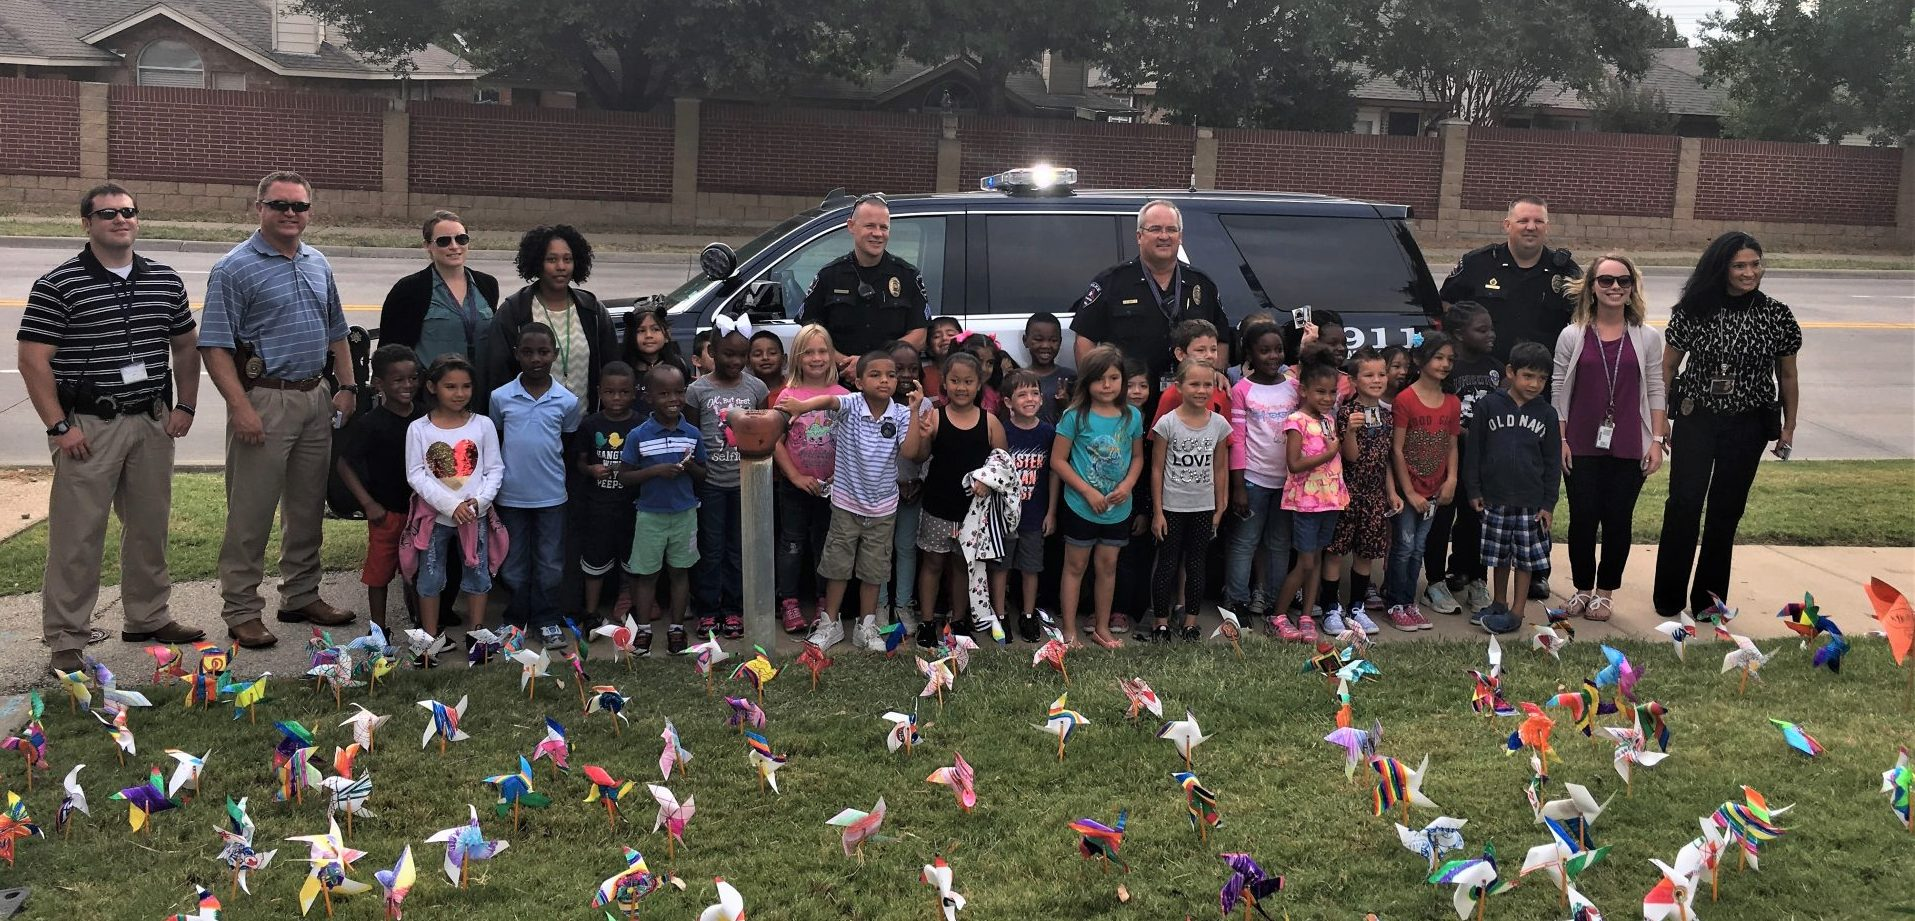 The Arlington PD joins Ashworth for Pinwheels for Peace 2017